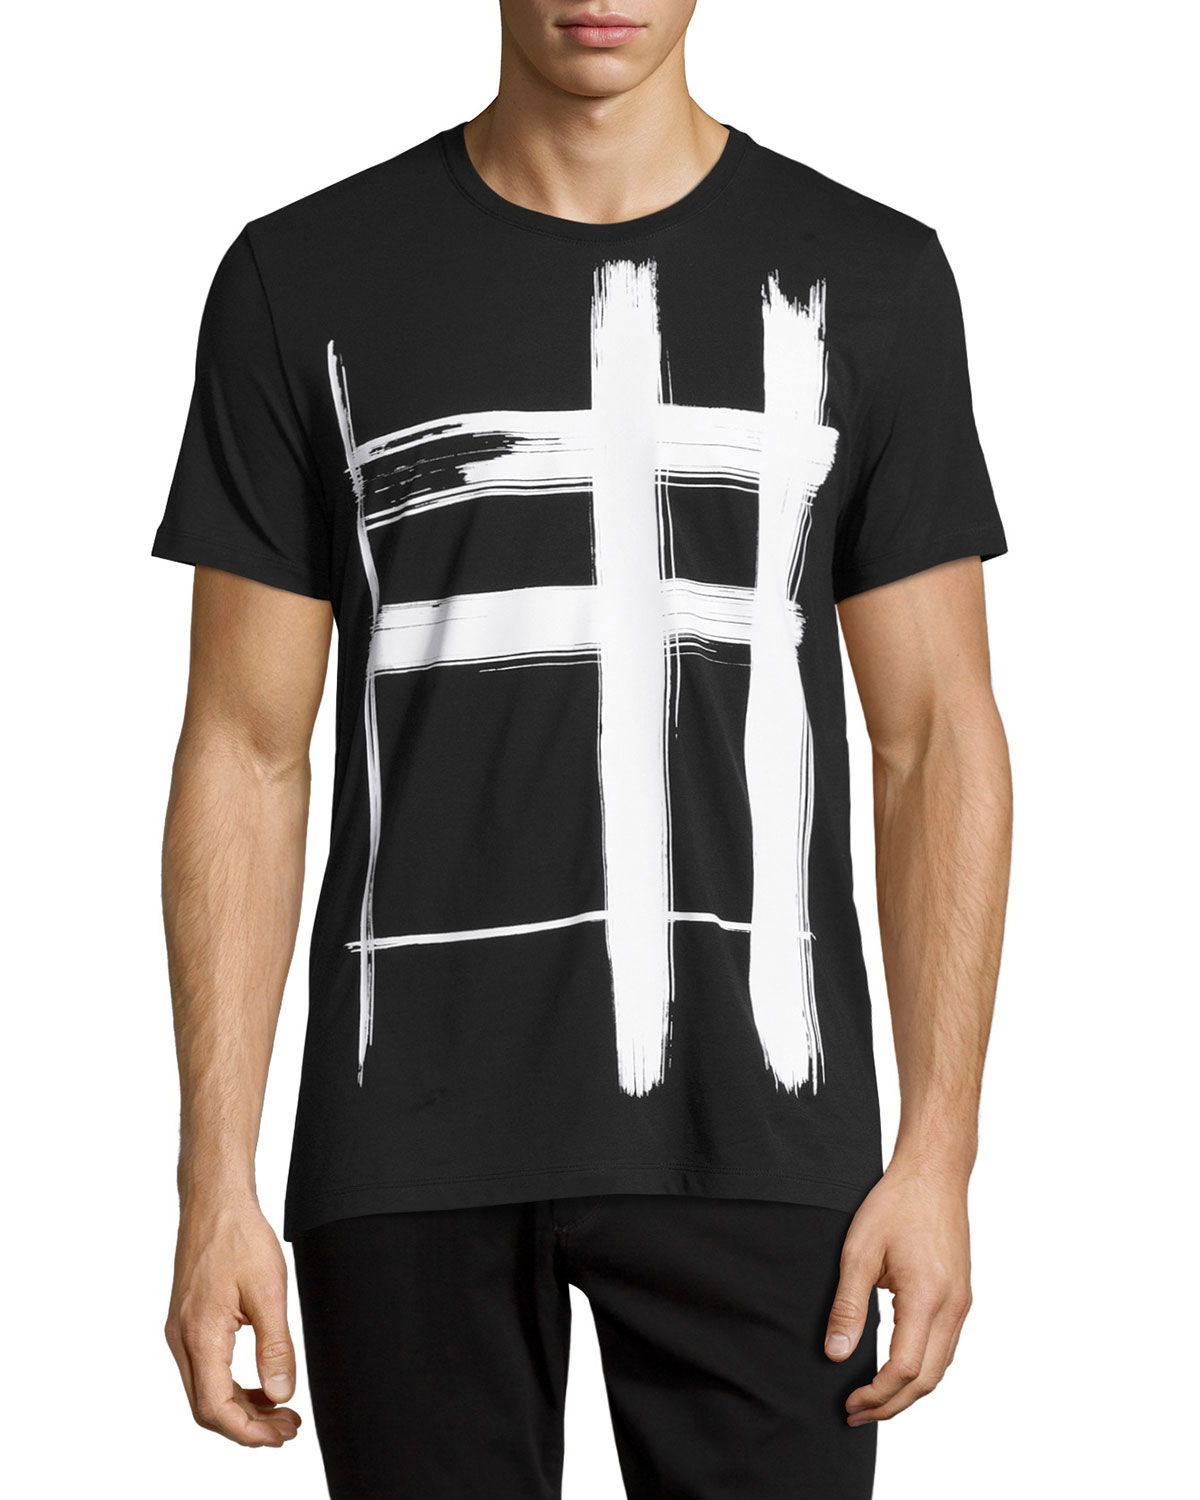 Lanesbury Brushstroke Check Short-Sleeve T-Shirt